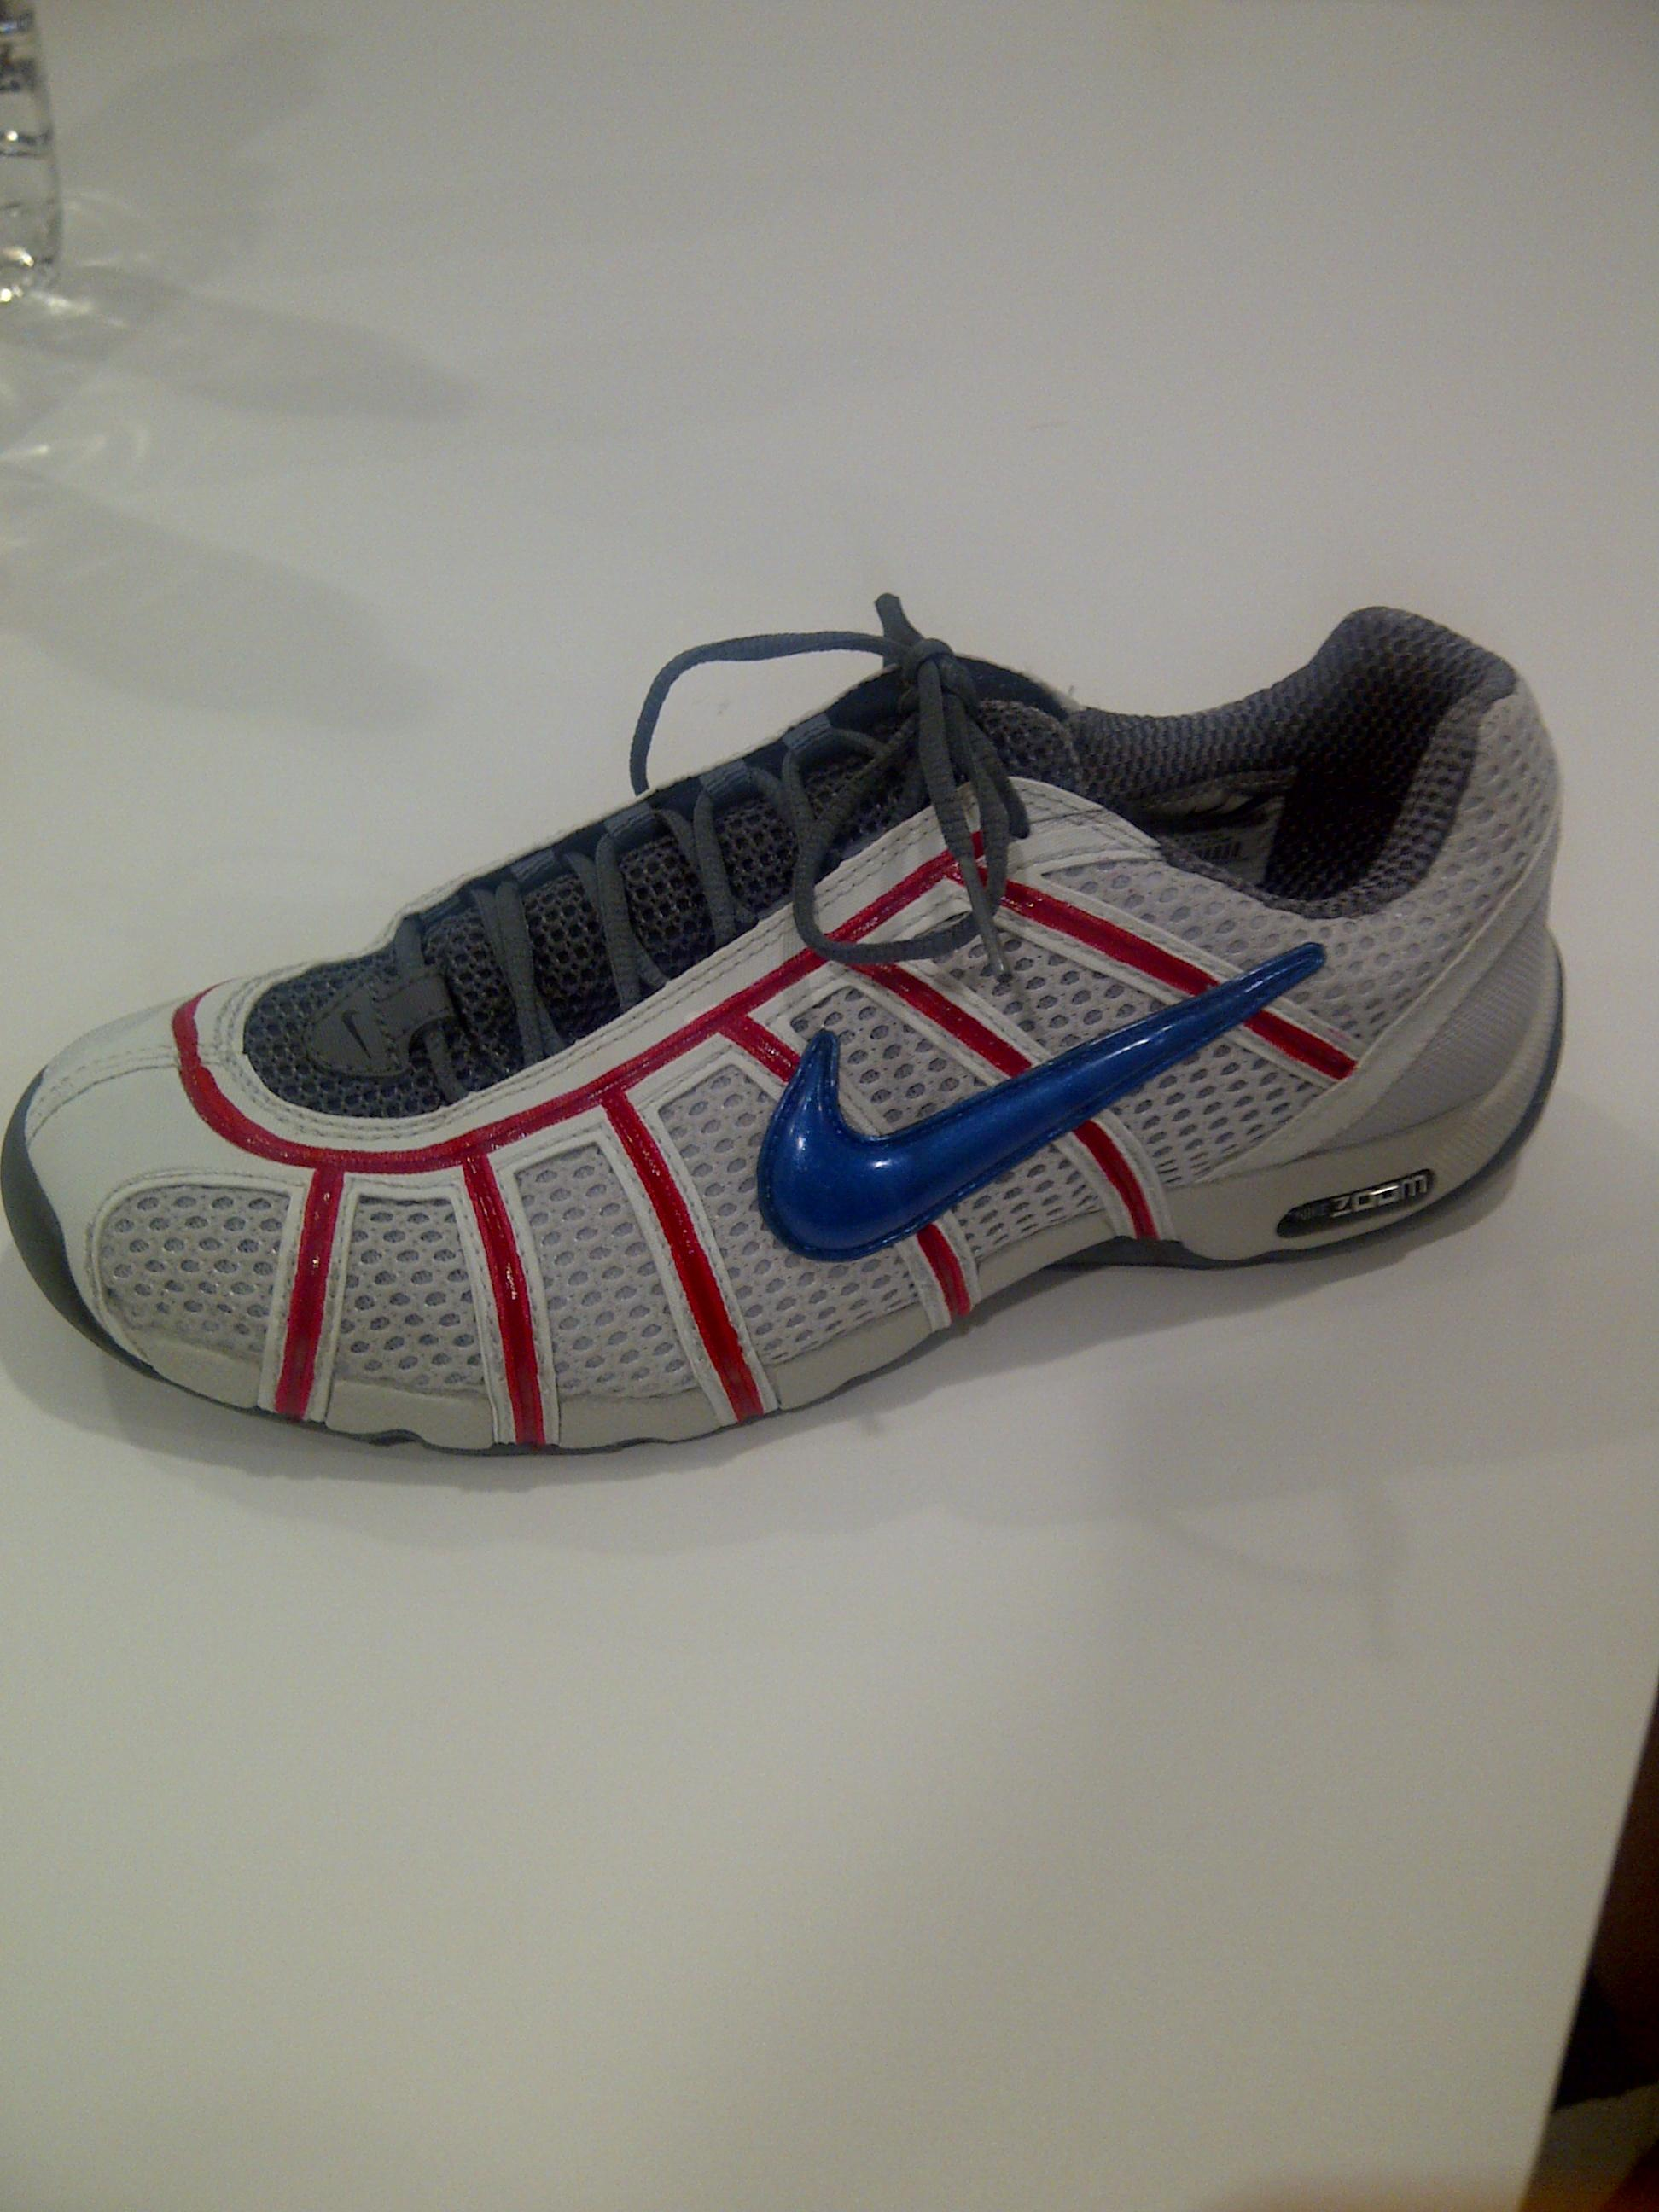 New Limited Edition Nike Fencing Shoes! Check them out…  e045e0455